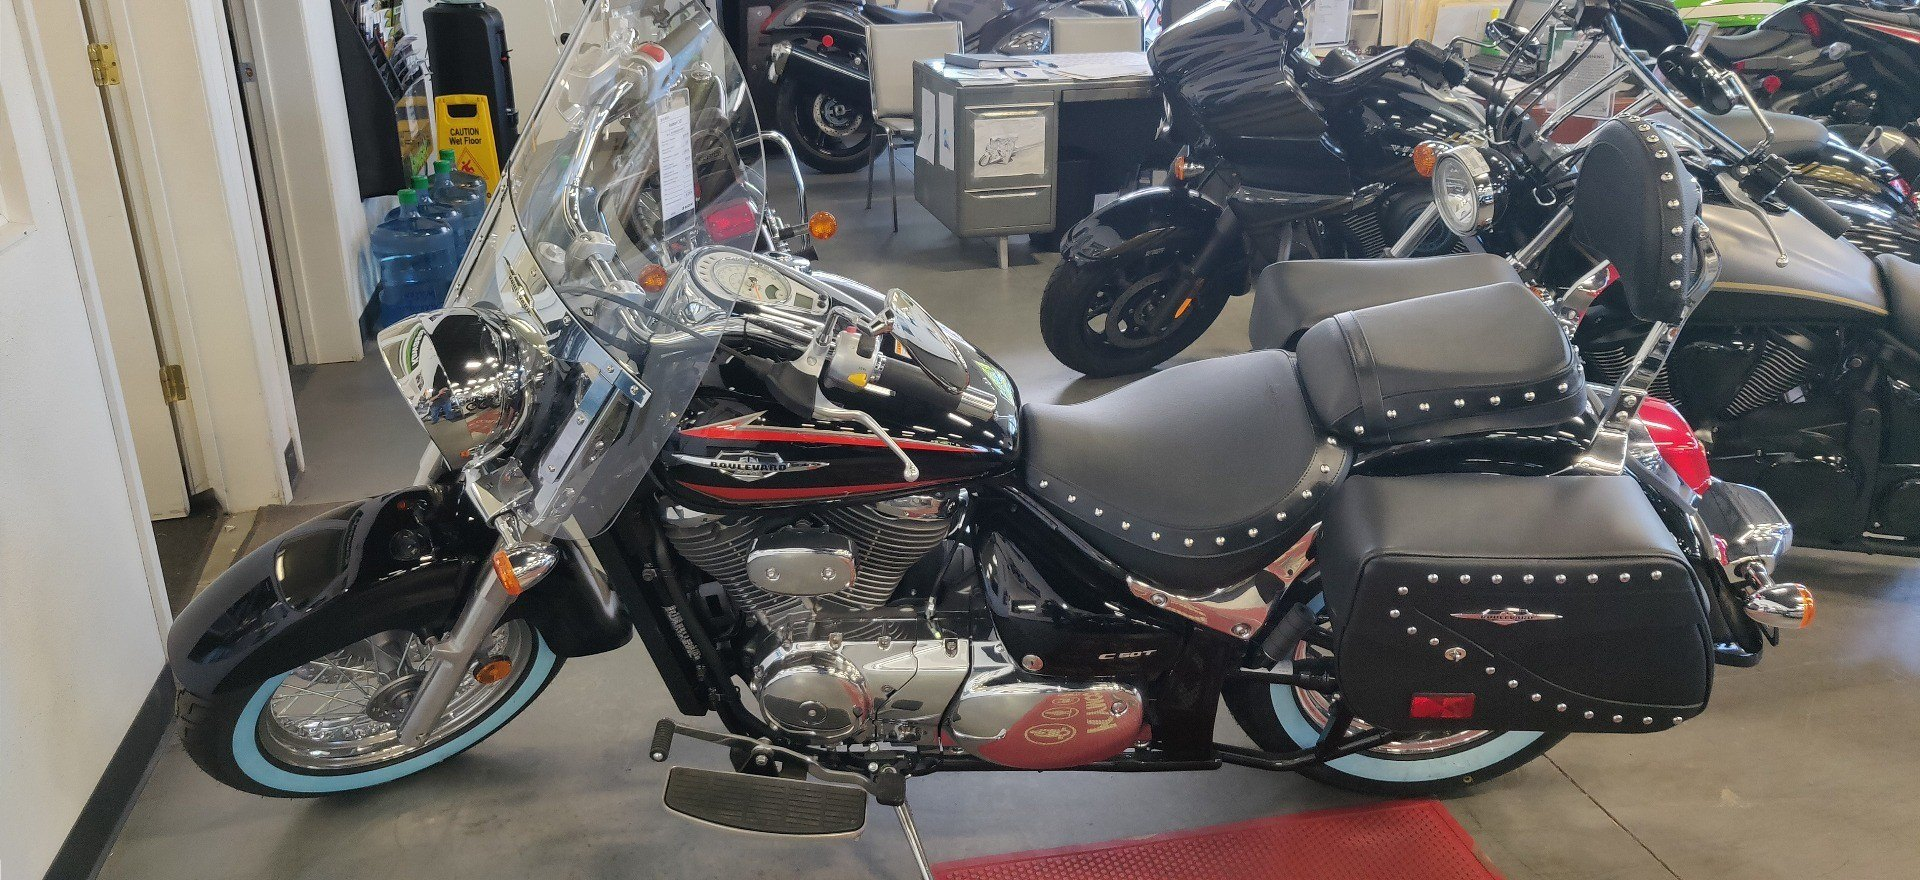 2019 Suzuki Boulevard C50 in Vallejo, California - Photo 1